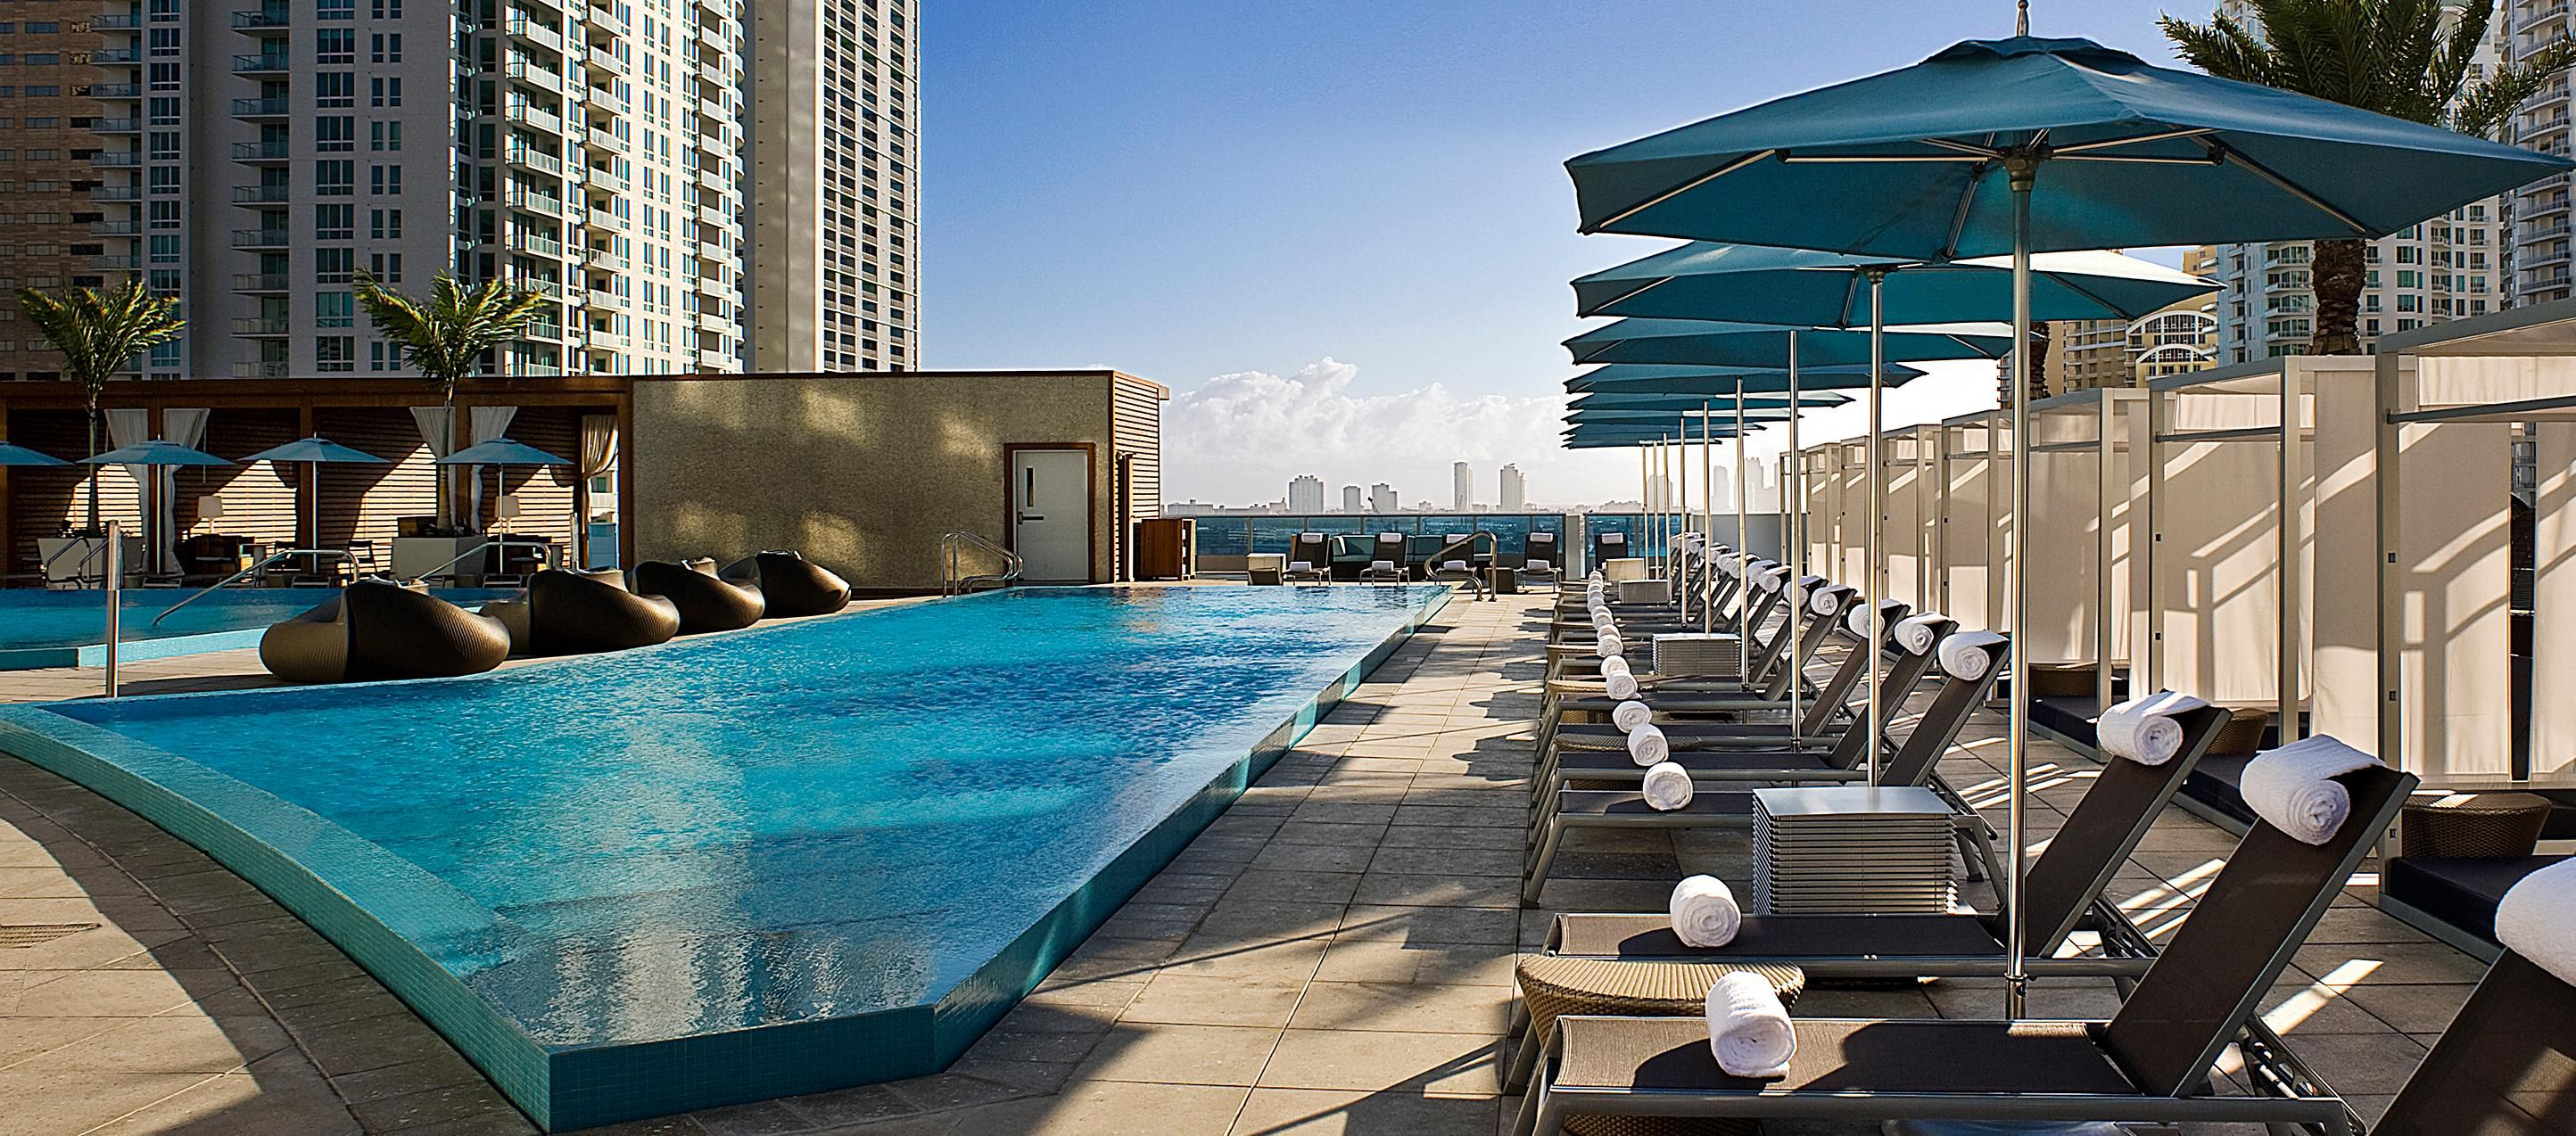 Kimpton Miami 4260487971 34x15 Epic Hotel Downtown Waterfront